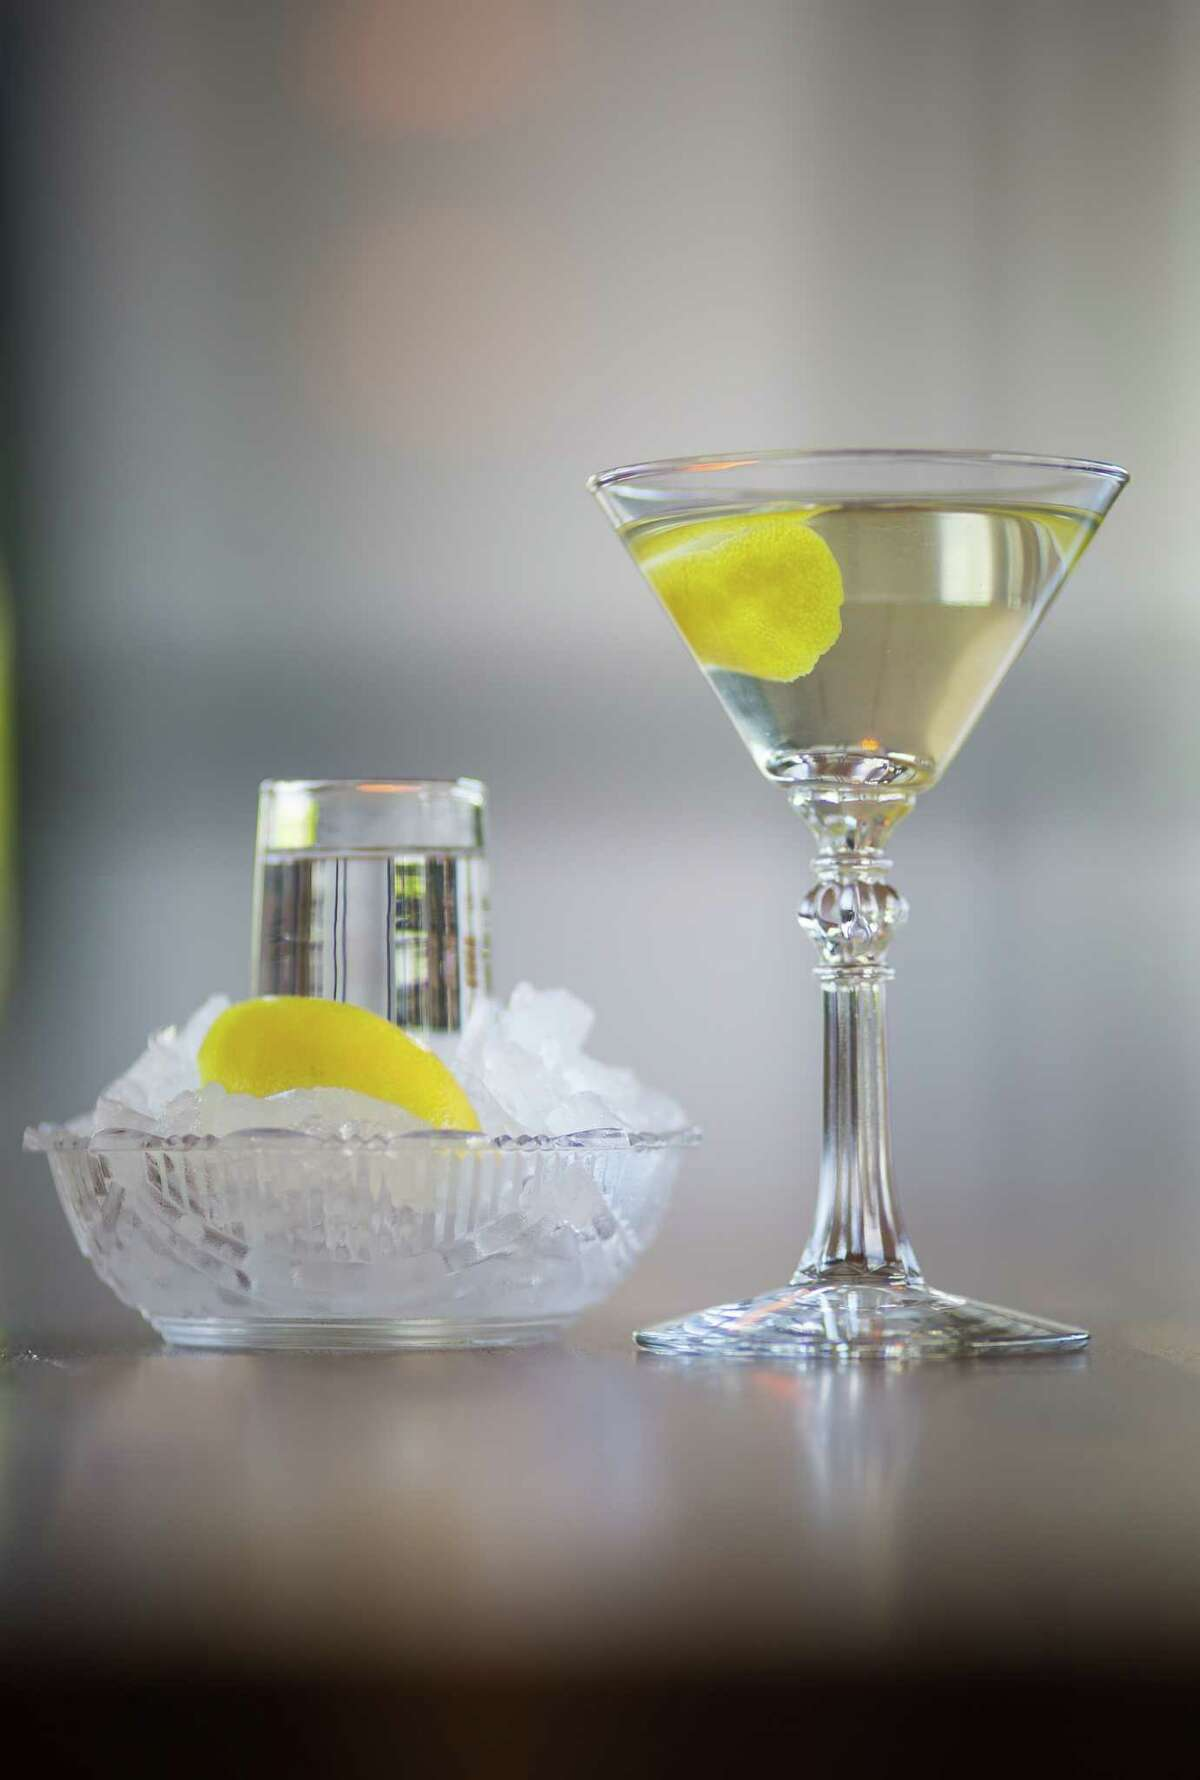 The Star fish martini at Star Fish is made with Fords Gin, extra-dry vermouth and lemon zest.